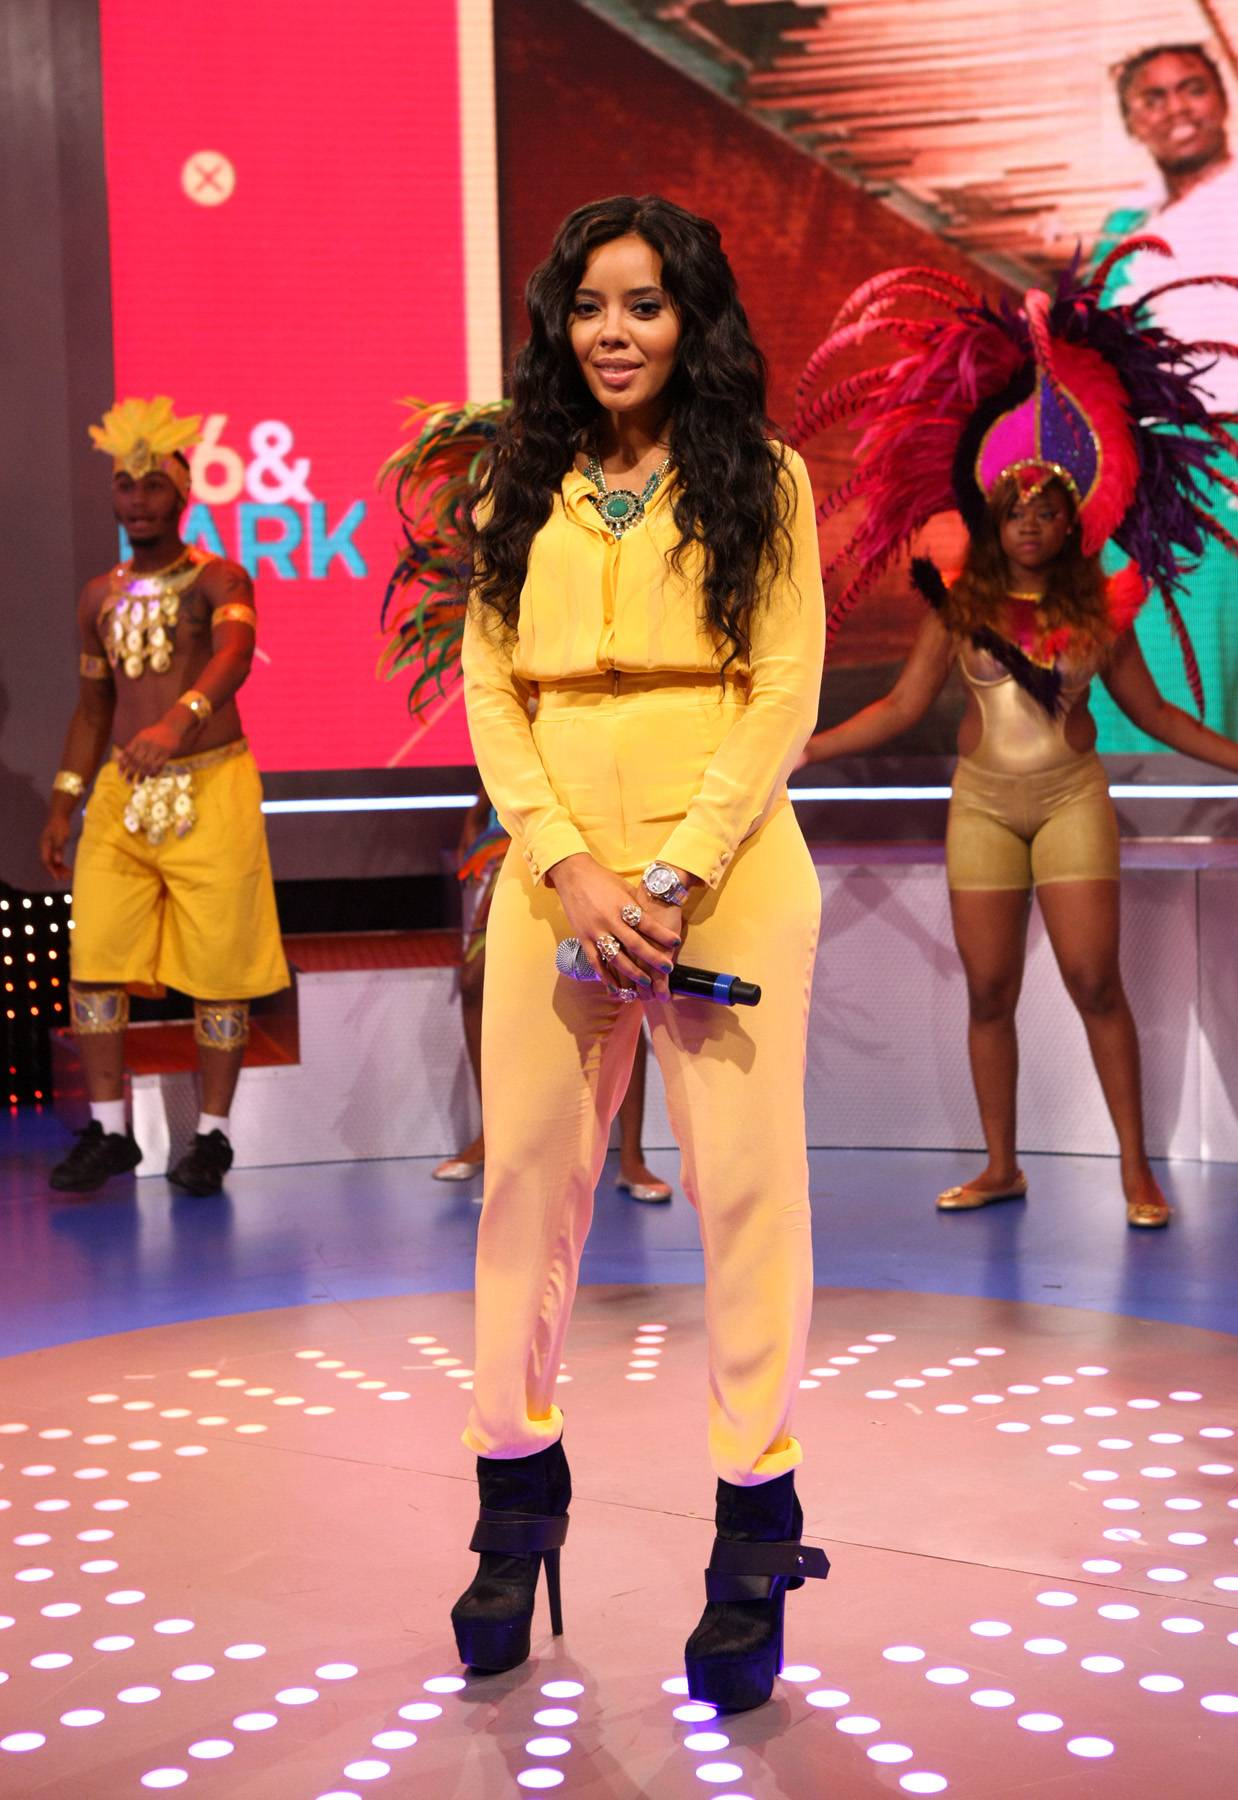 Mellow Yellow - For the 106 Carnival special at the end of August, Angela Simmons rocked a tough yellow jumpsuit with a great green necklace and killed it! (Photo: Bennett Raglin/BET/Getty Images for BET)